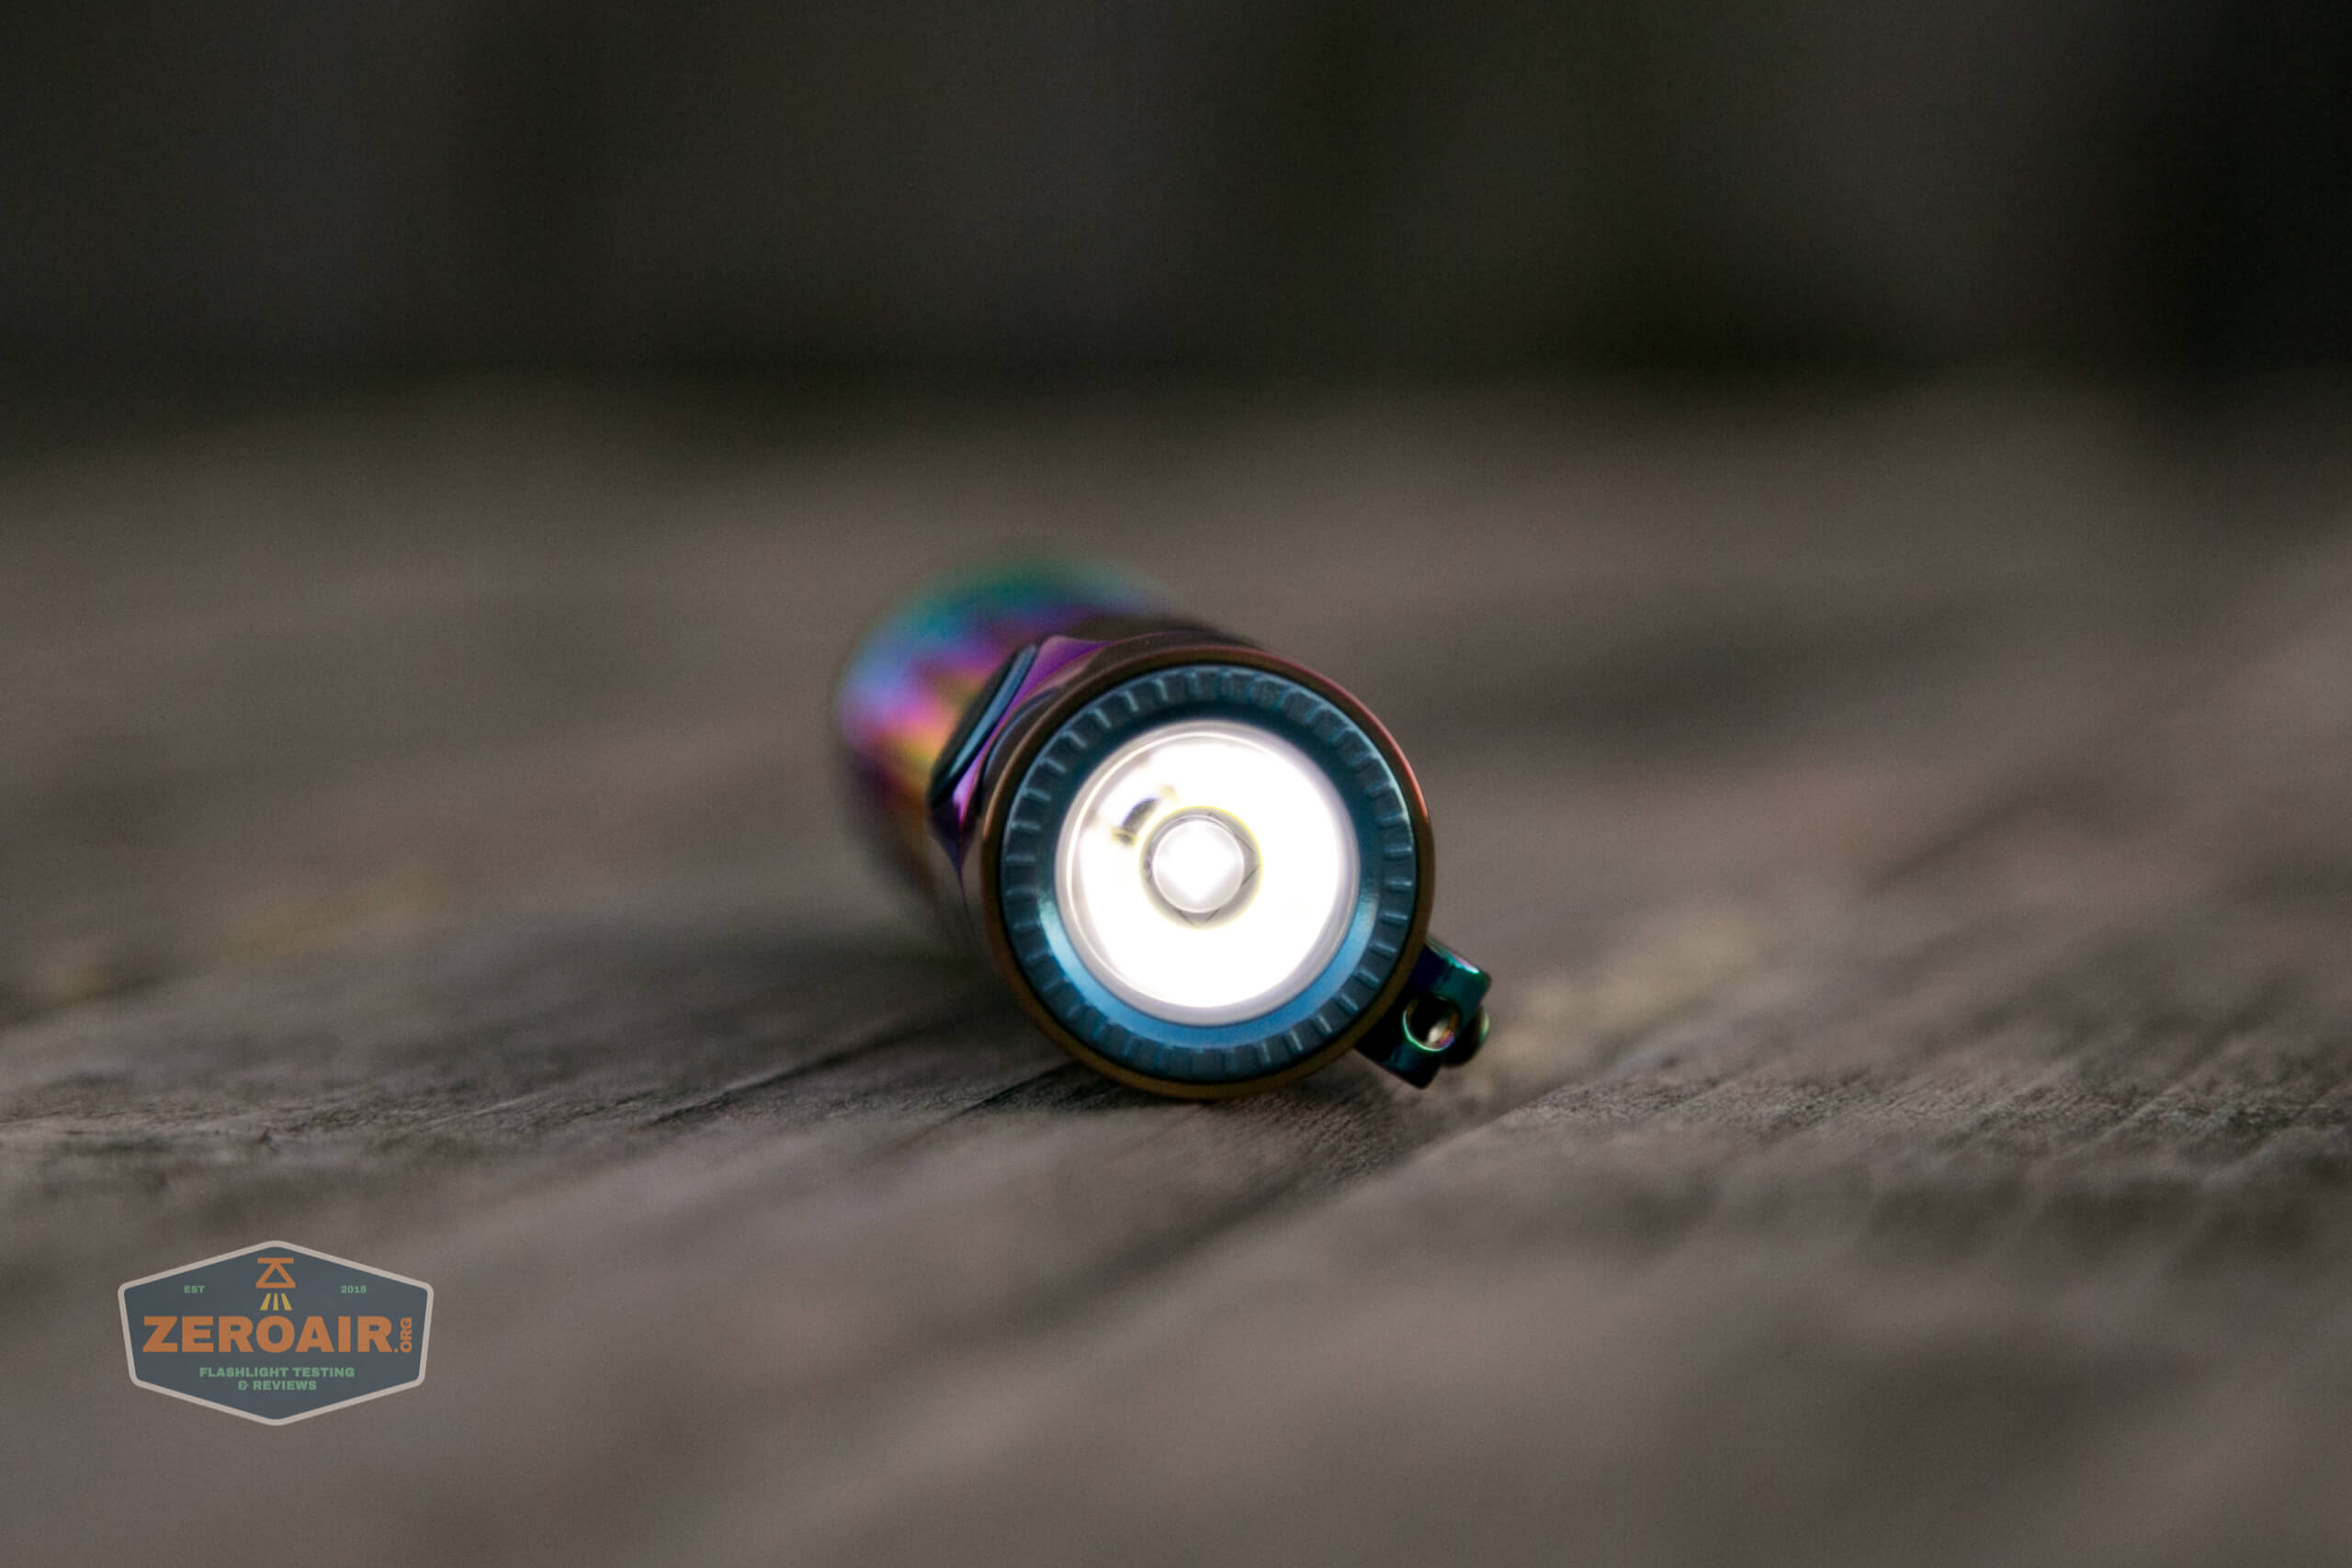 olight warrior mini rainbow spring 2 led flashlight on low